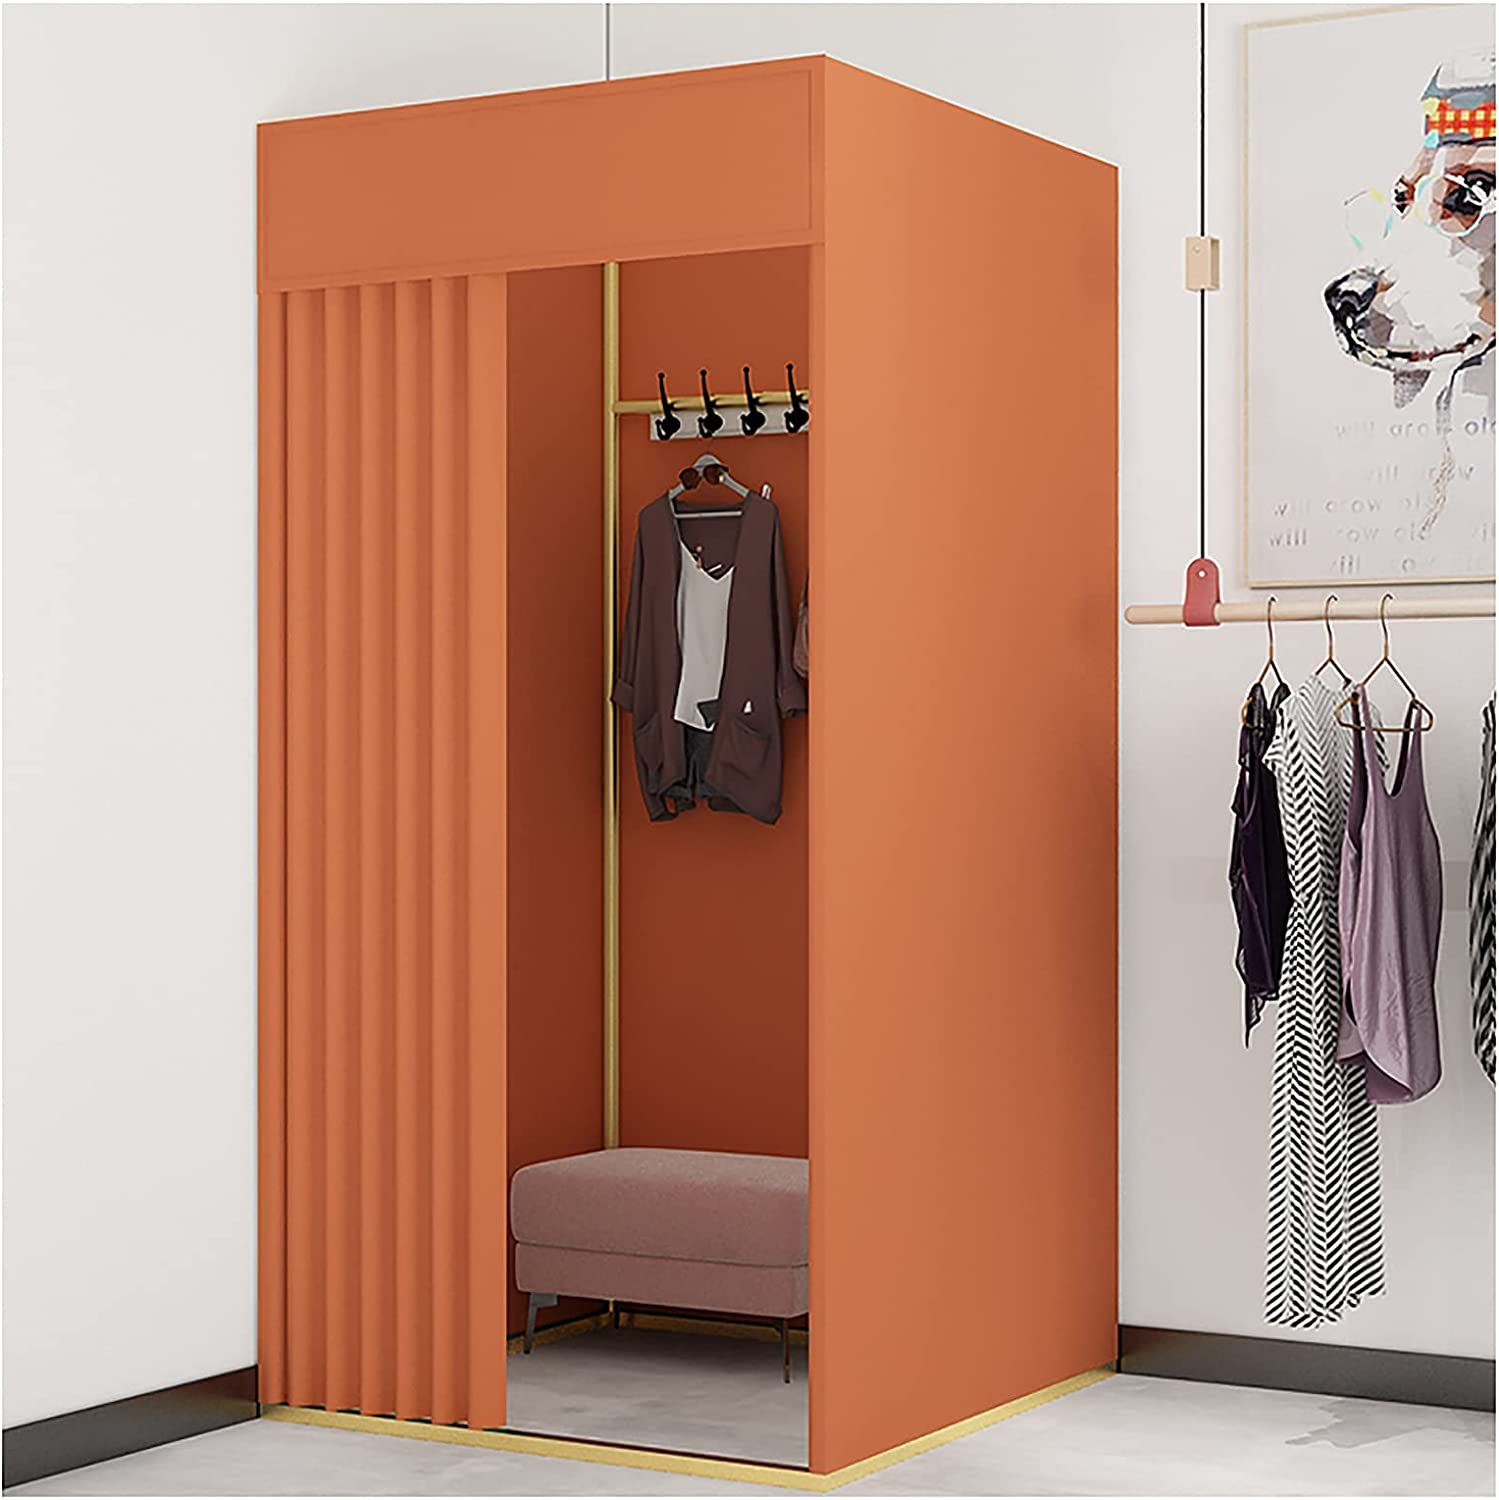 BCGT Fitting Room Clothing Store Privac In a popularity Protection Fashionable